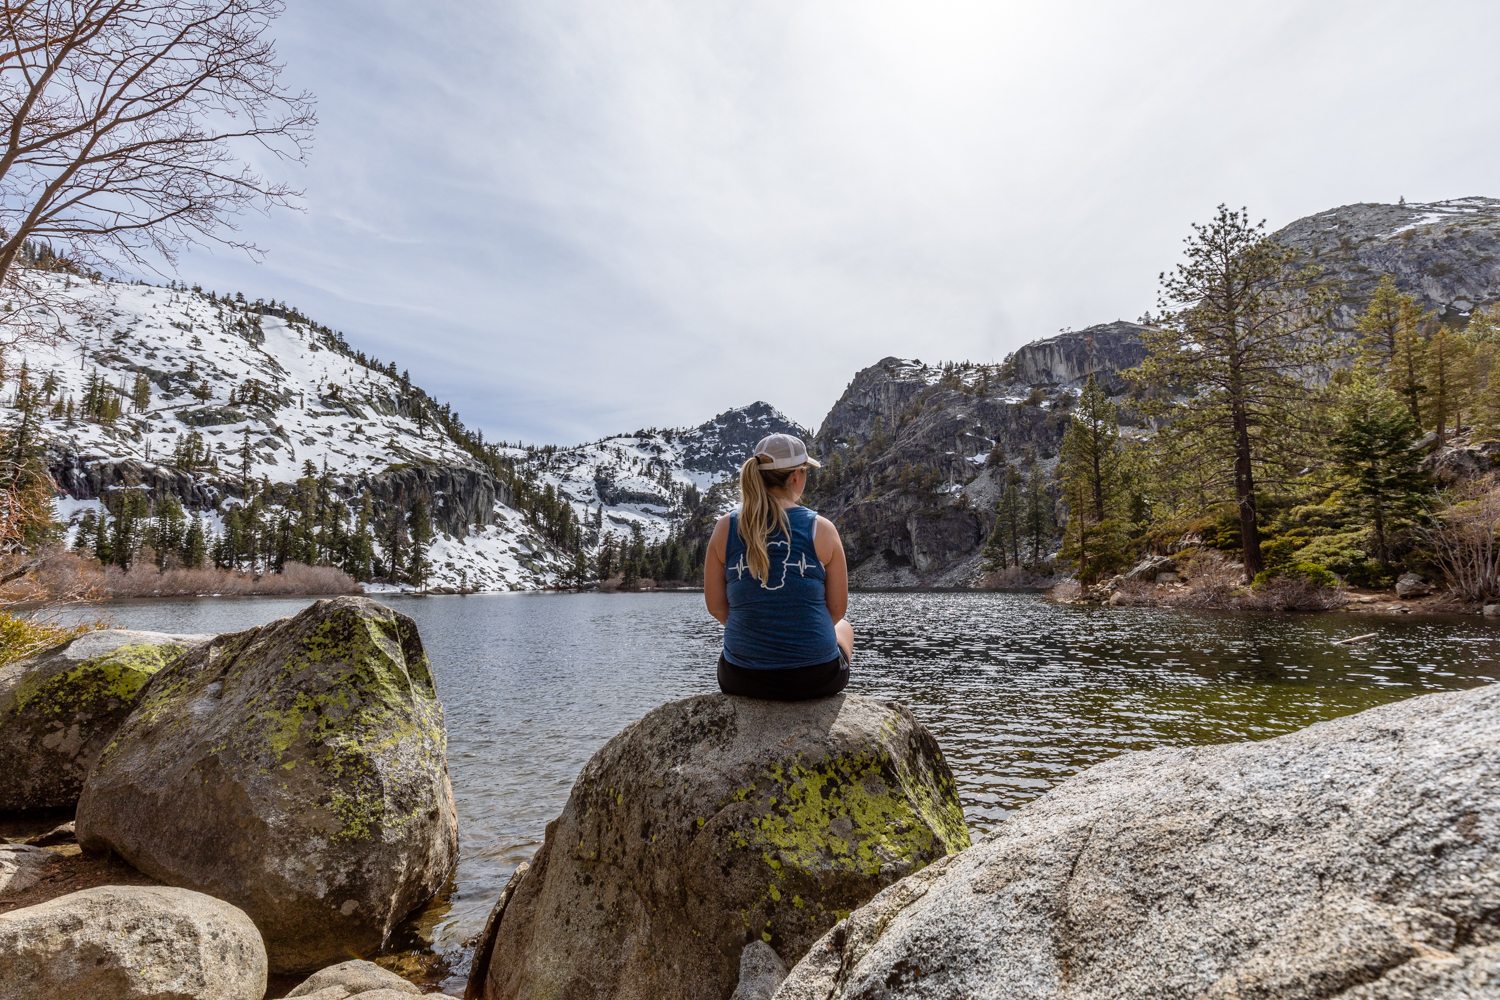 Lake Tahoe Hiking Guide | The Best Hikes in Lake Tahoe | Eagle Lake | Desolation Wilderness | Catherine Chicotka